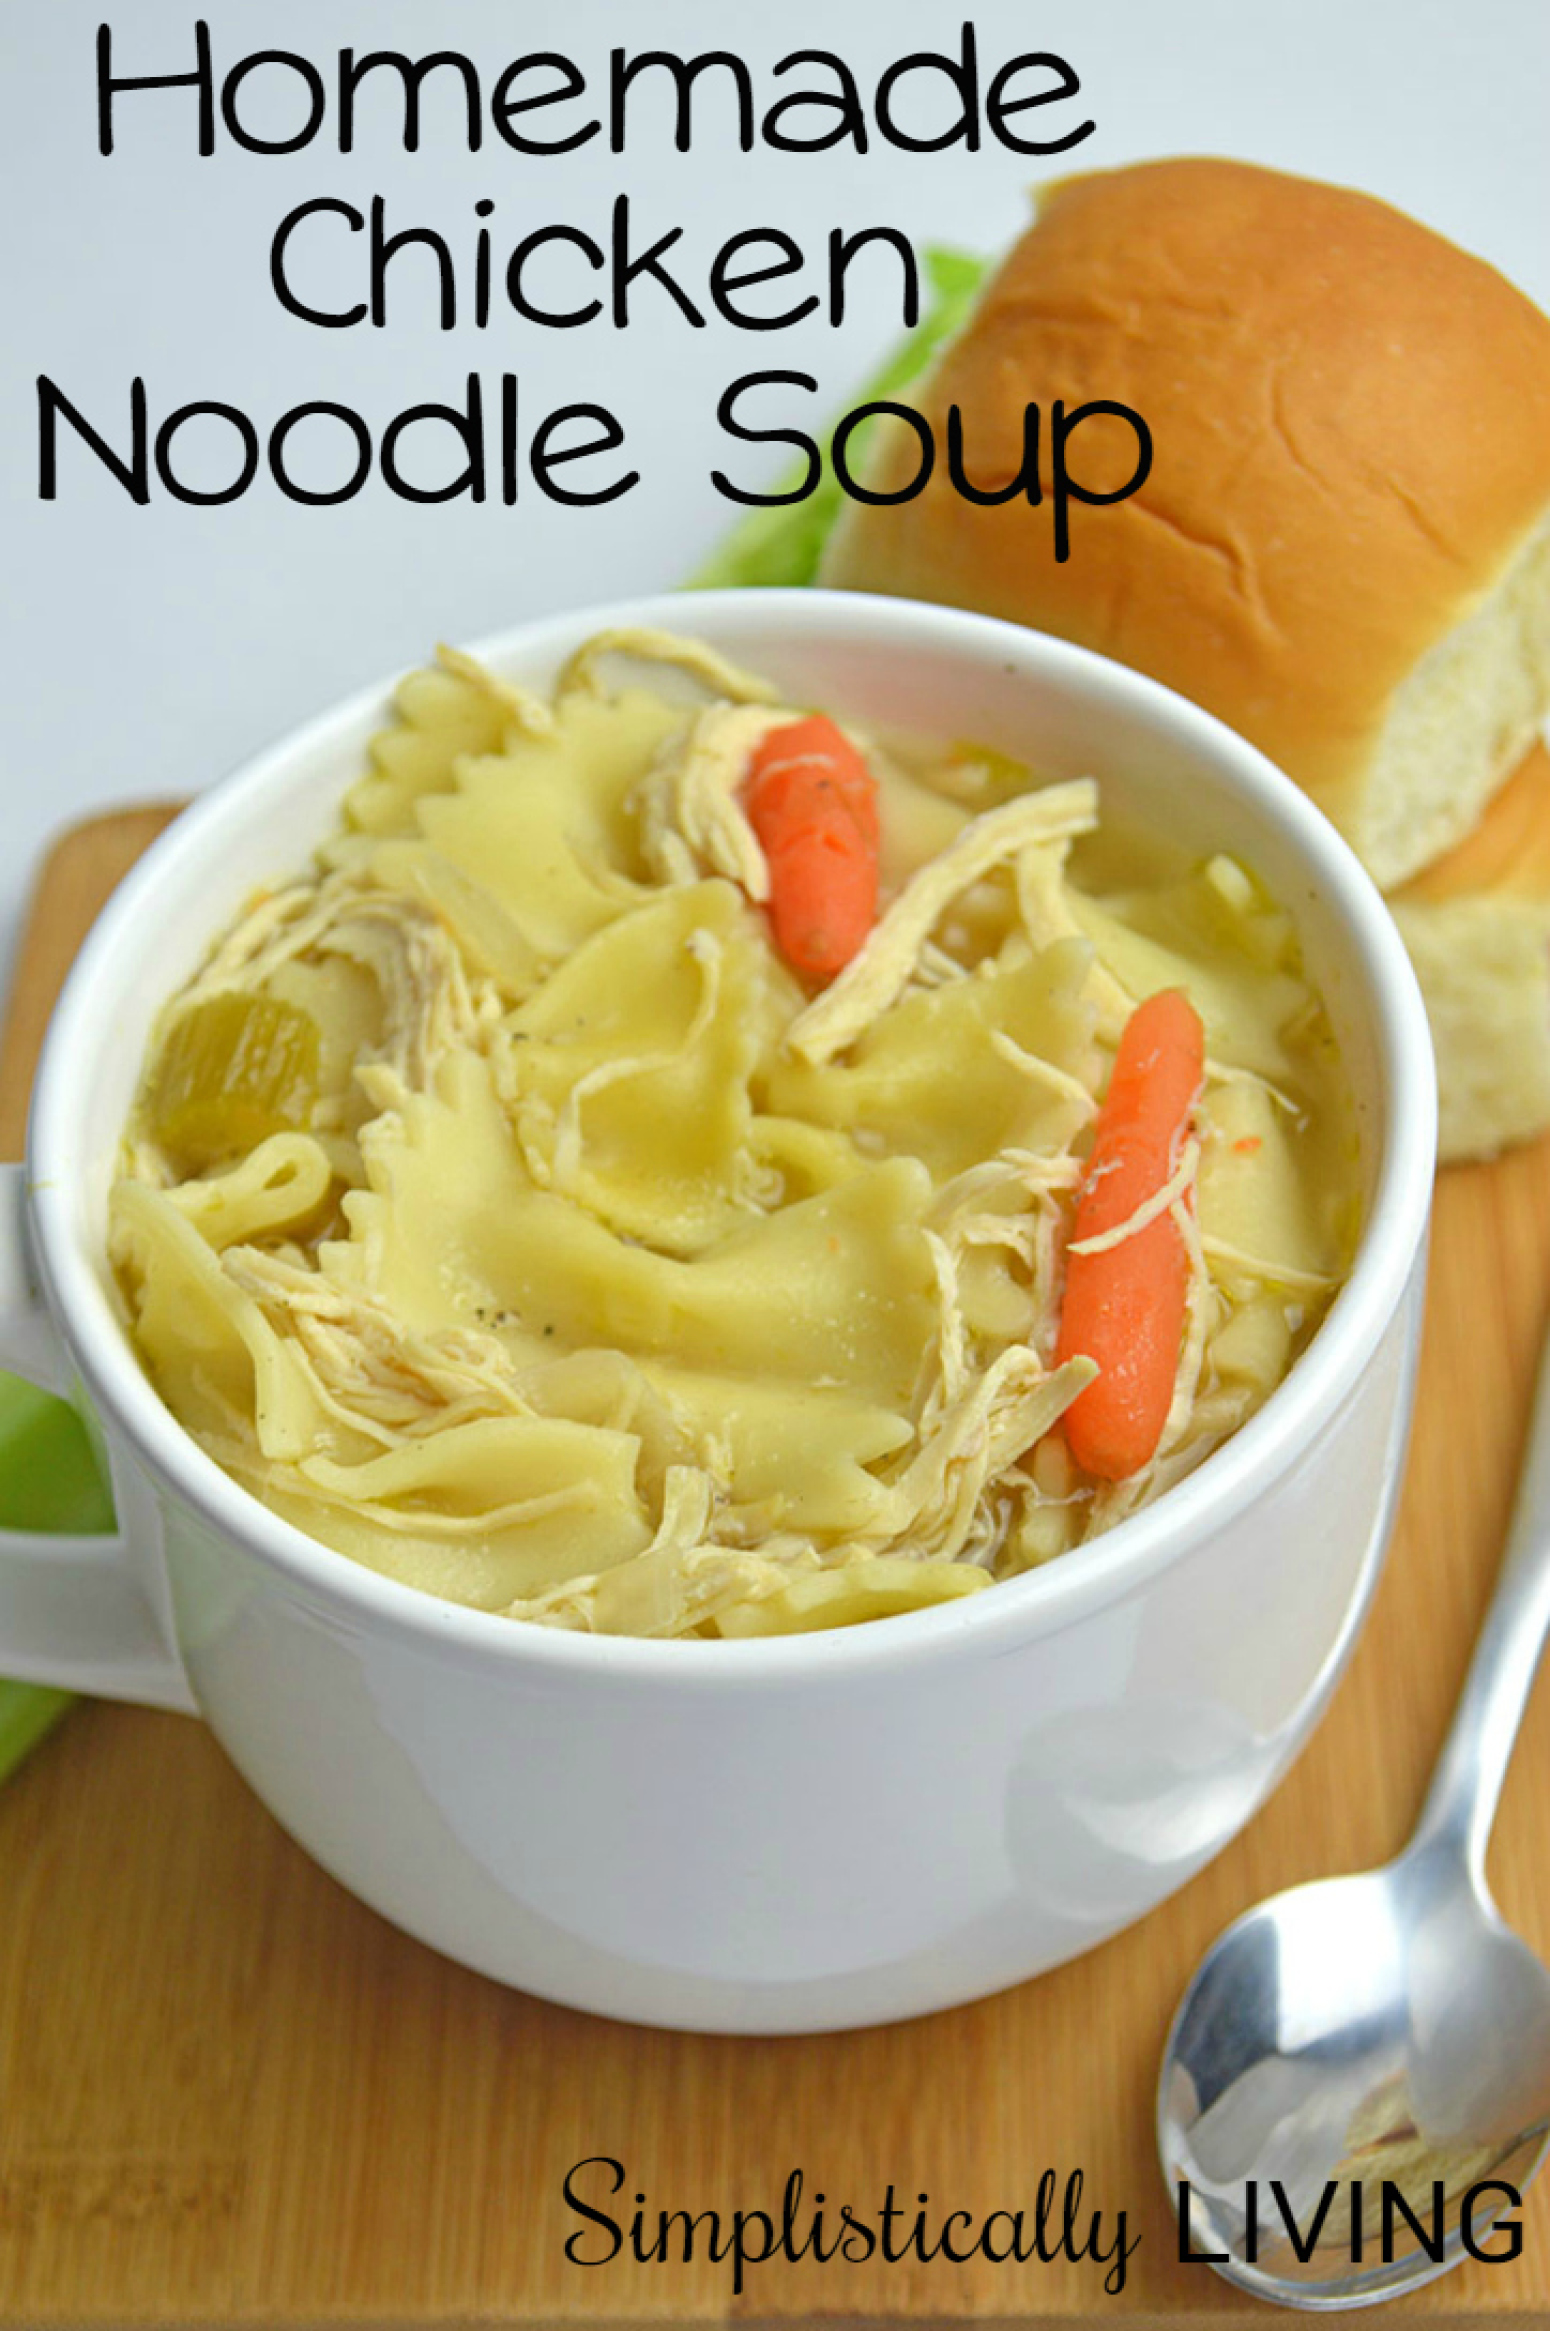 Slow cooker homemade chicken noodle soup recipe just a for How to make homemade chicken noodle soup